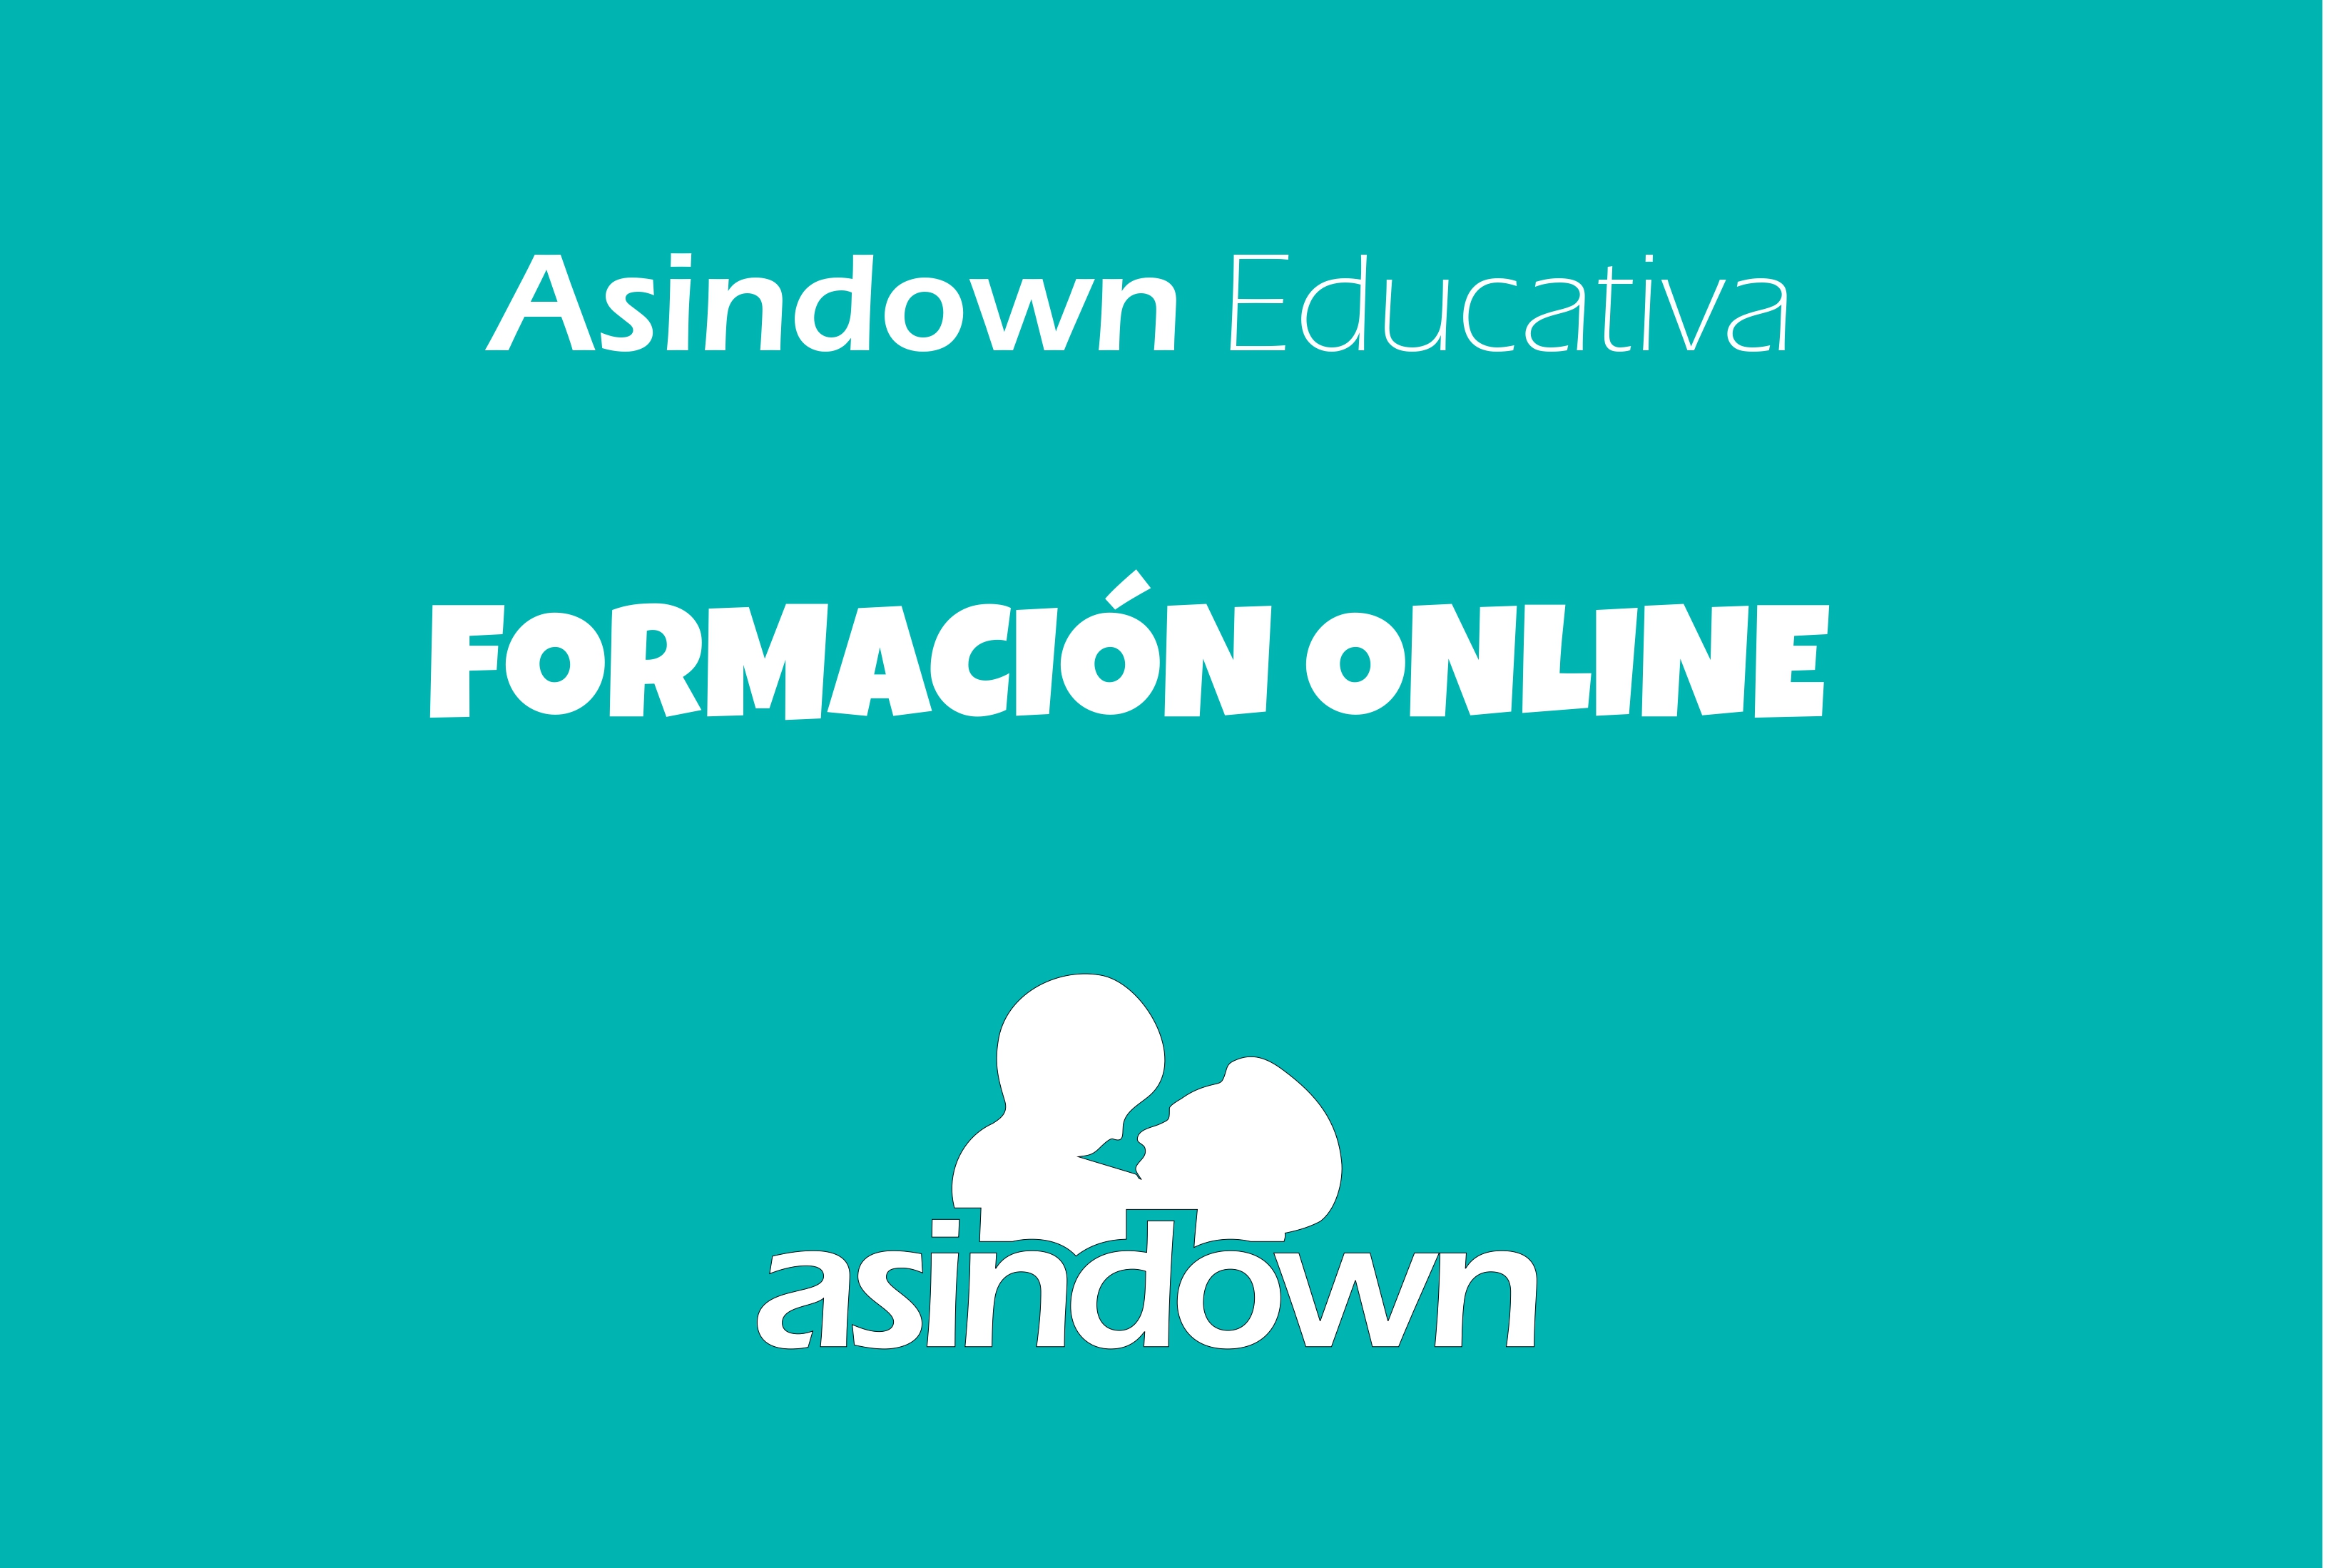 ASINDOWN EDUCATIVA. ATENCIÓN A FAMILIAS Y PERSONAS USUARIAS